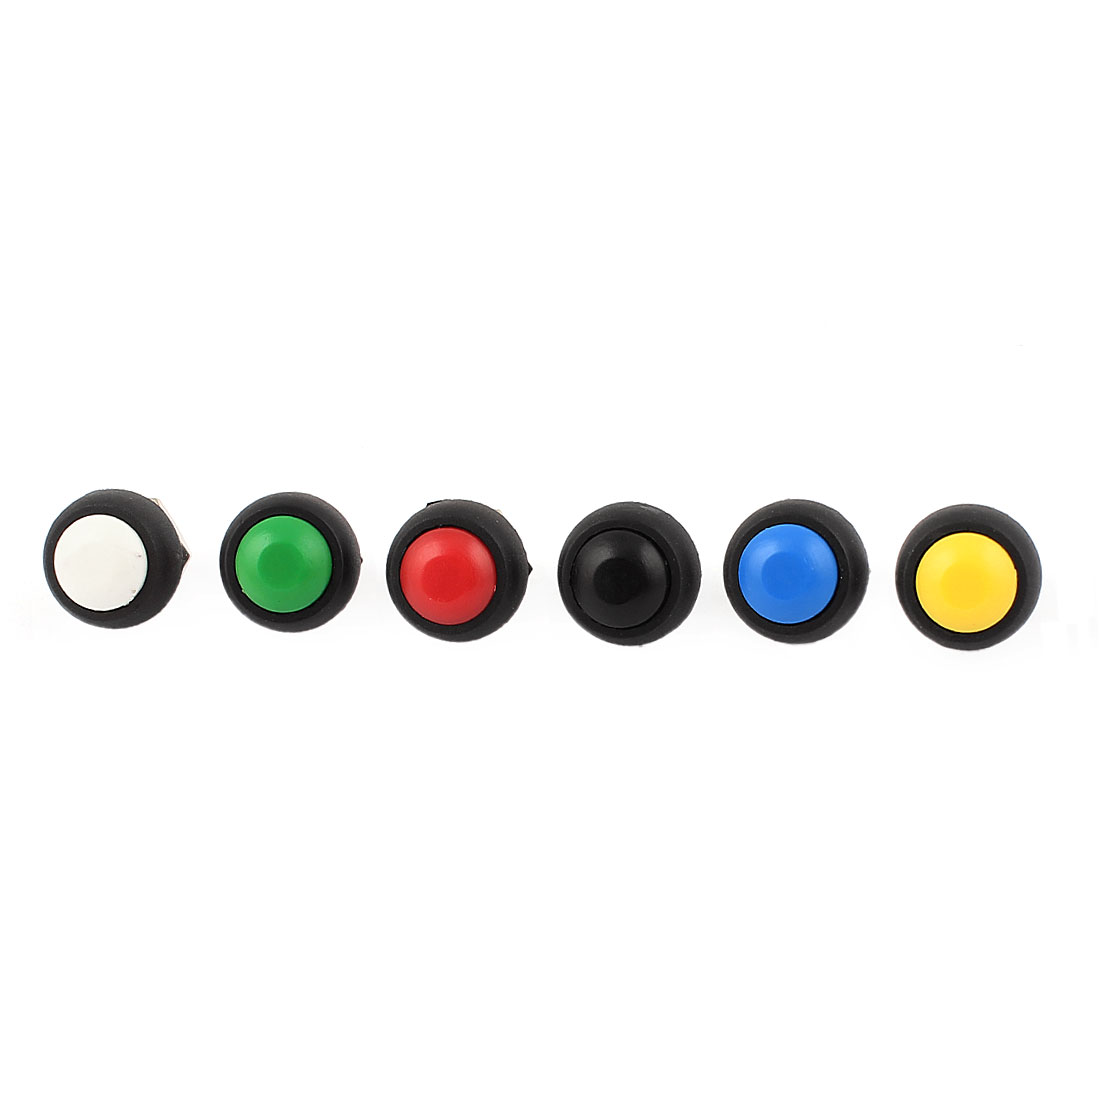 6Pcs 12mm Mounted Thread SPST Red Green Yellow Blue Black White Head Momentary Push Button Switch Set